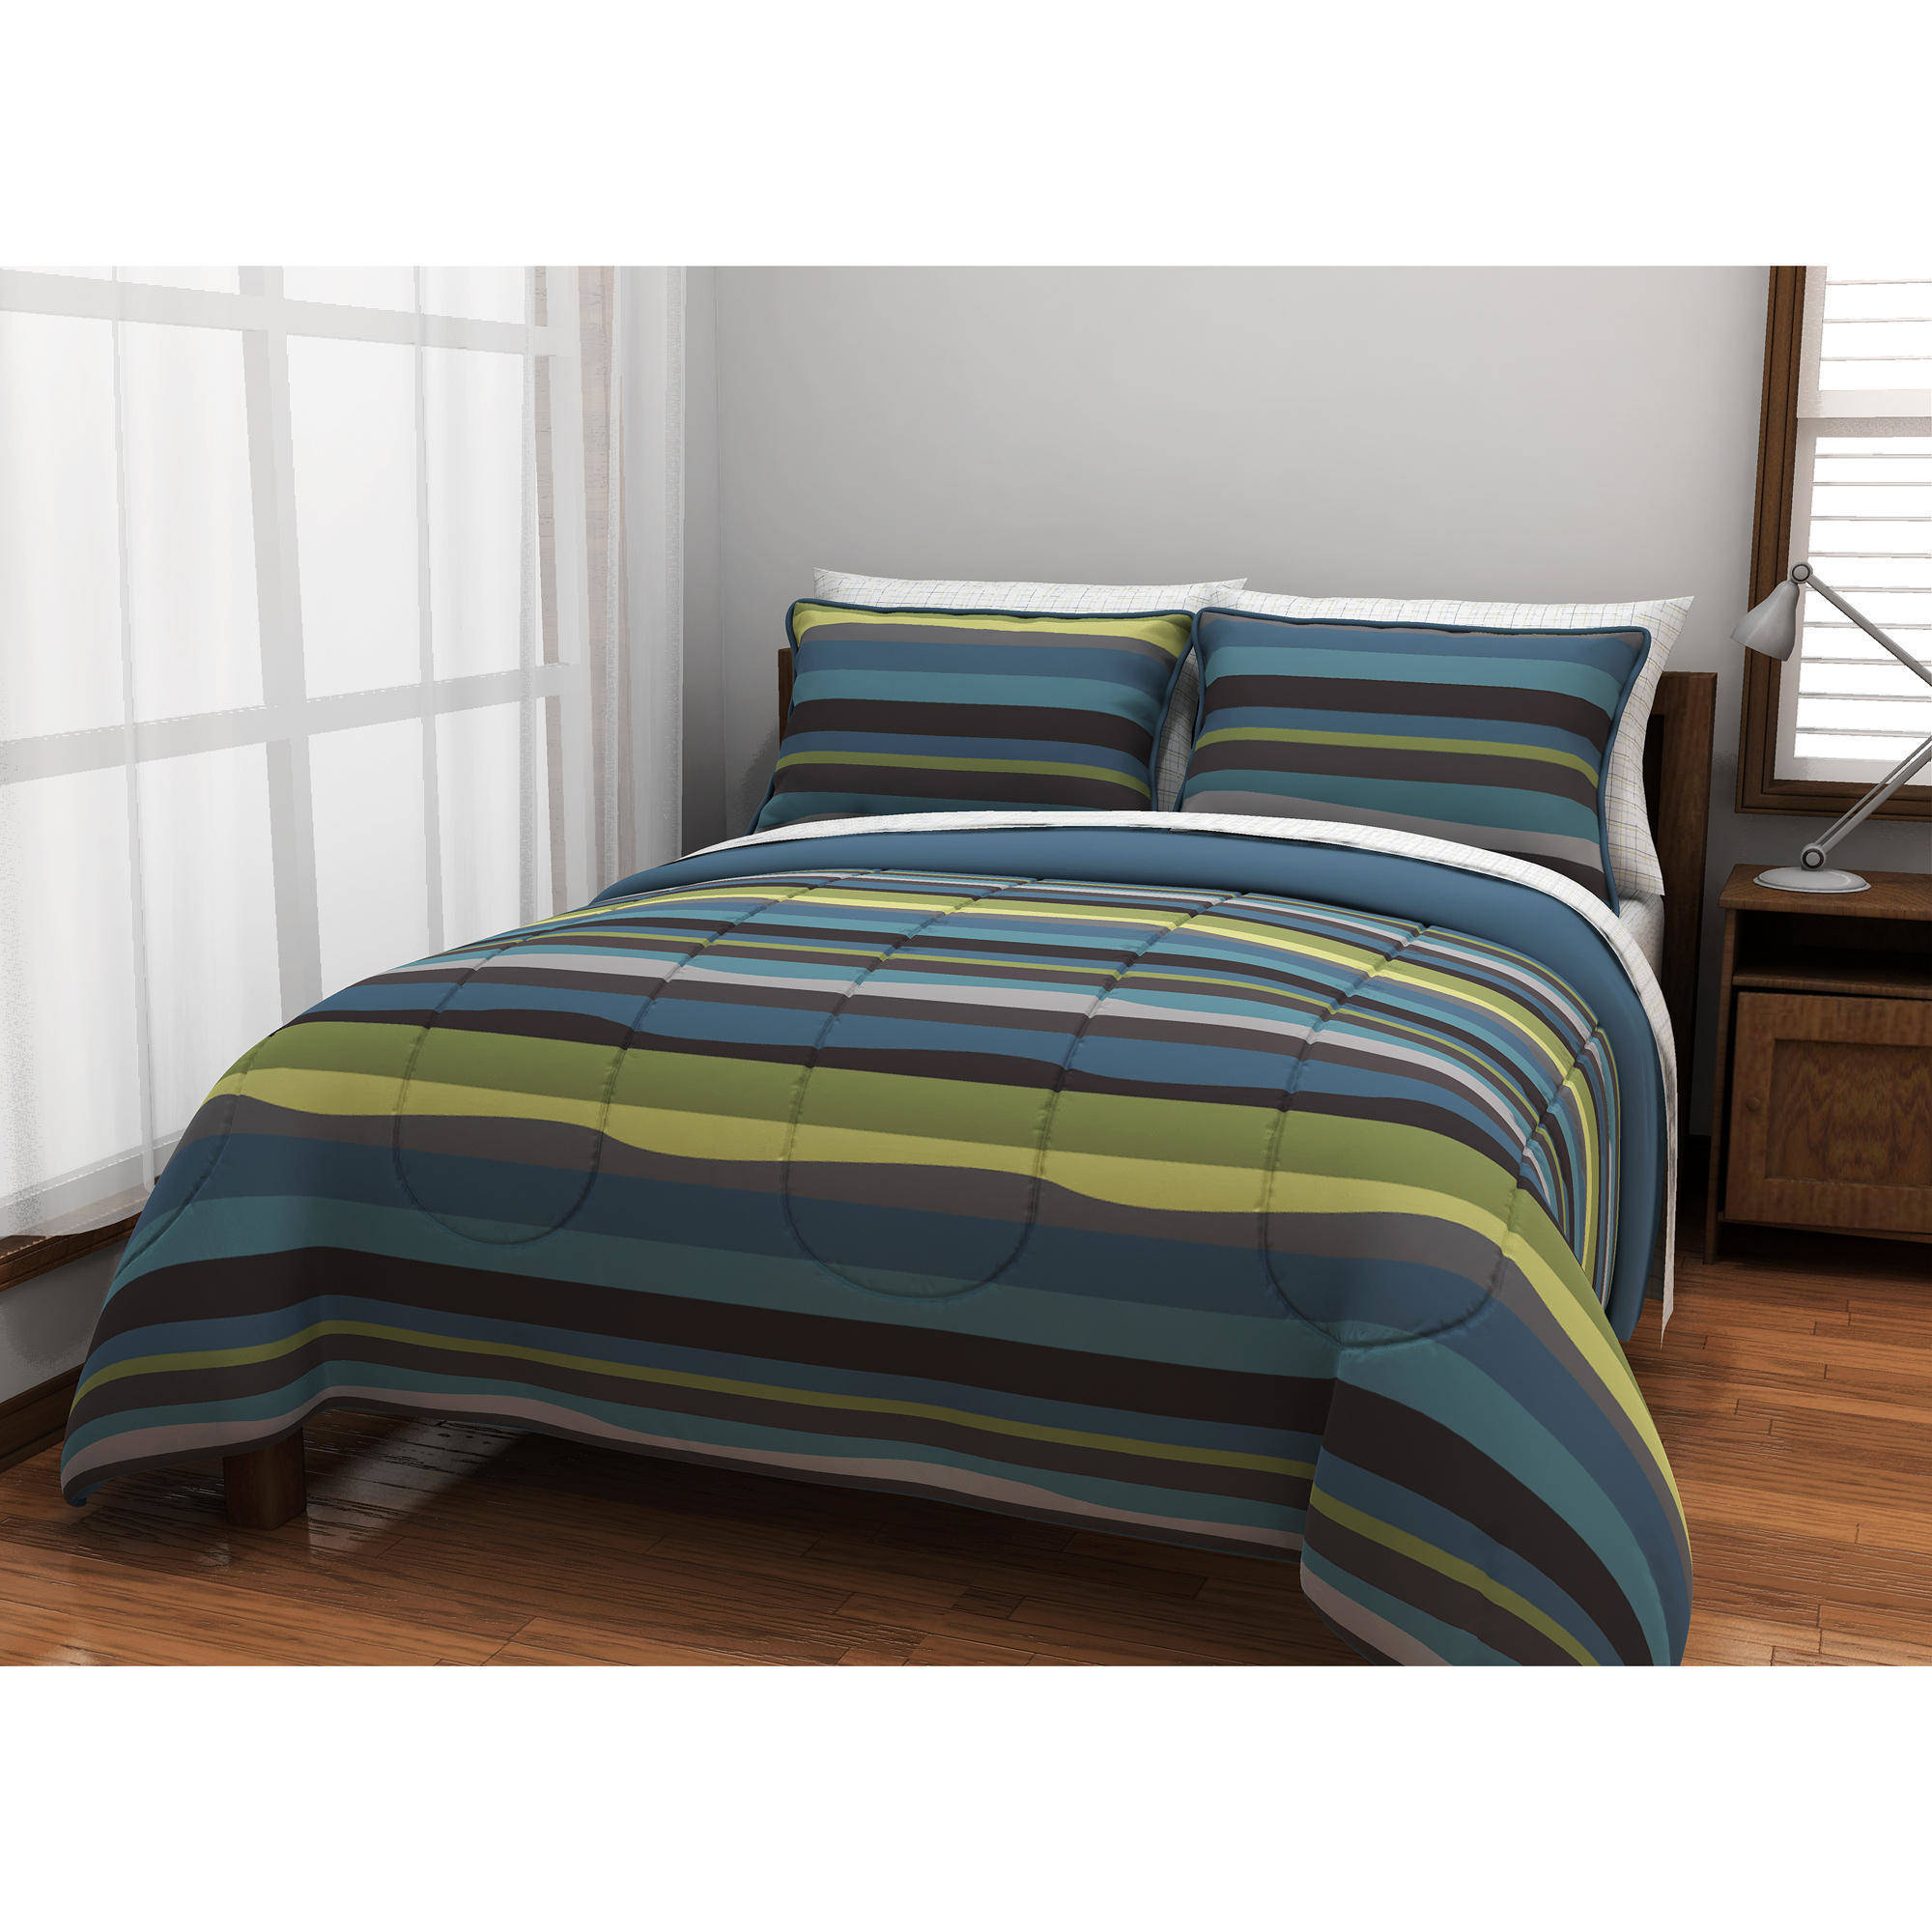 Generic American Original Blue Pacific Stripe Reversible Complete Bedding Set, Green Bed in a Bag